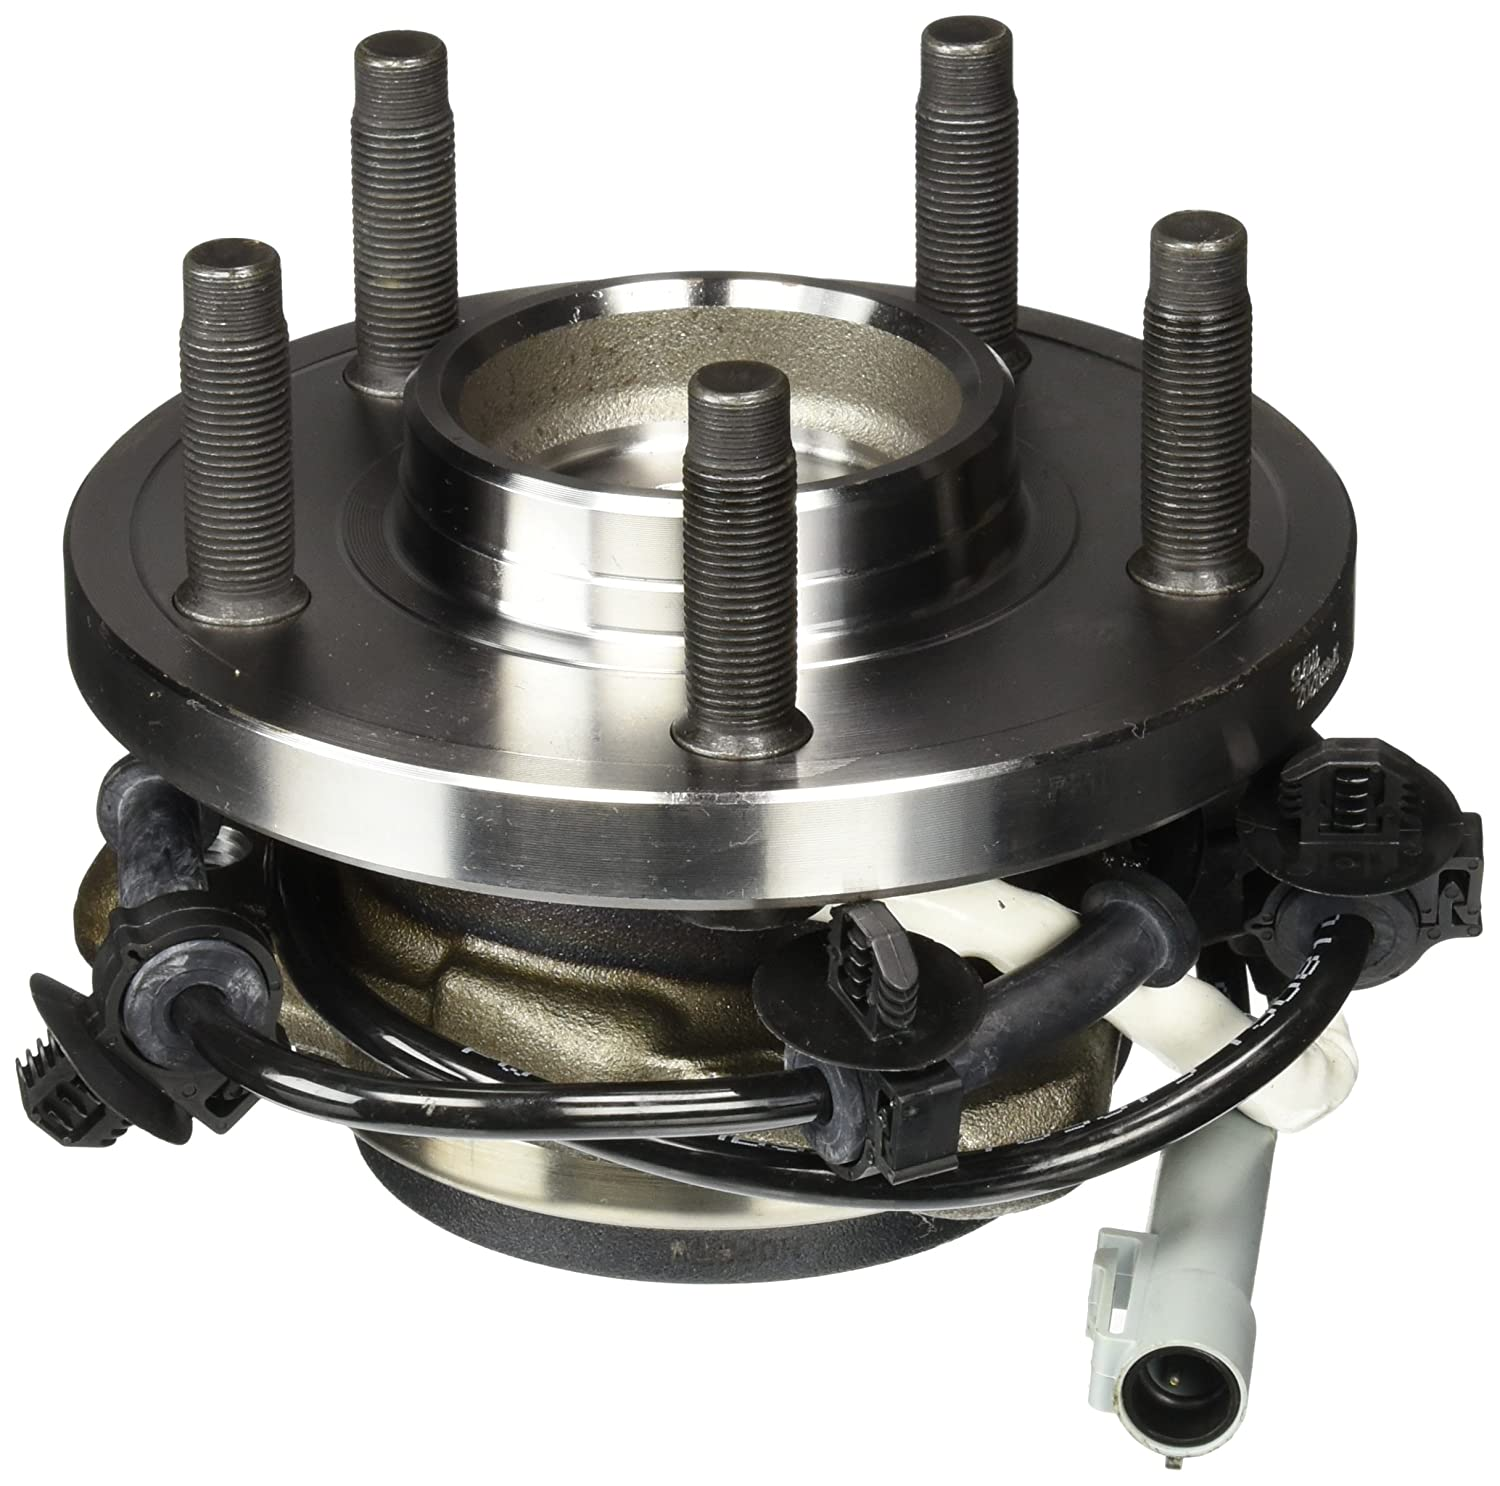 Timken Sp450202 Axle Bearing And Hub Assembly Automotive Ford Ranger 4x4 Locking Troubleshooting